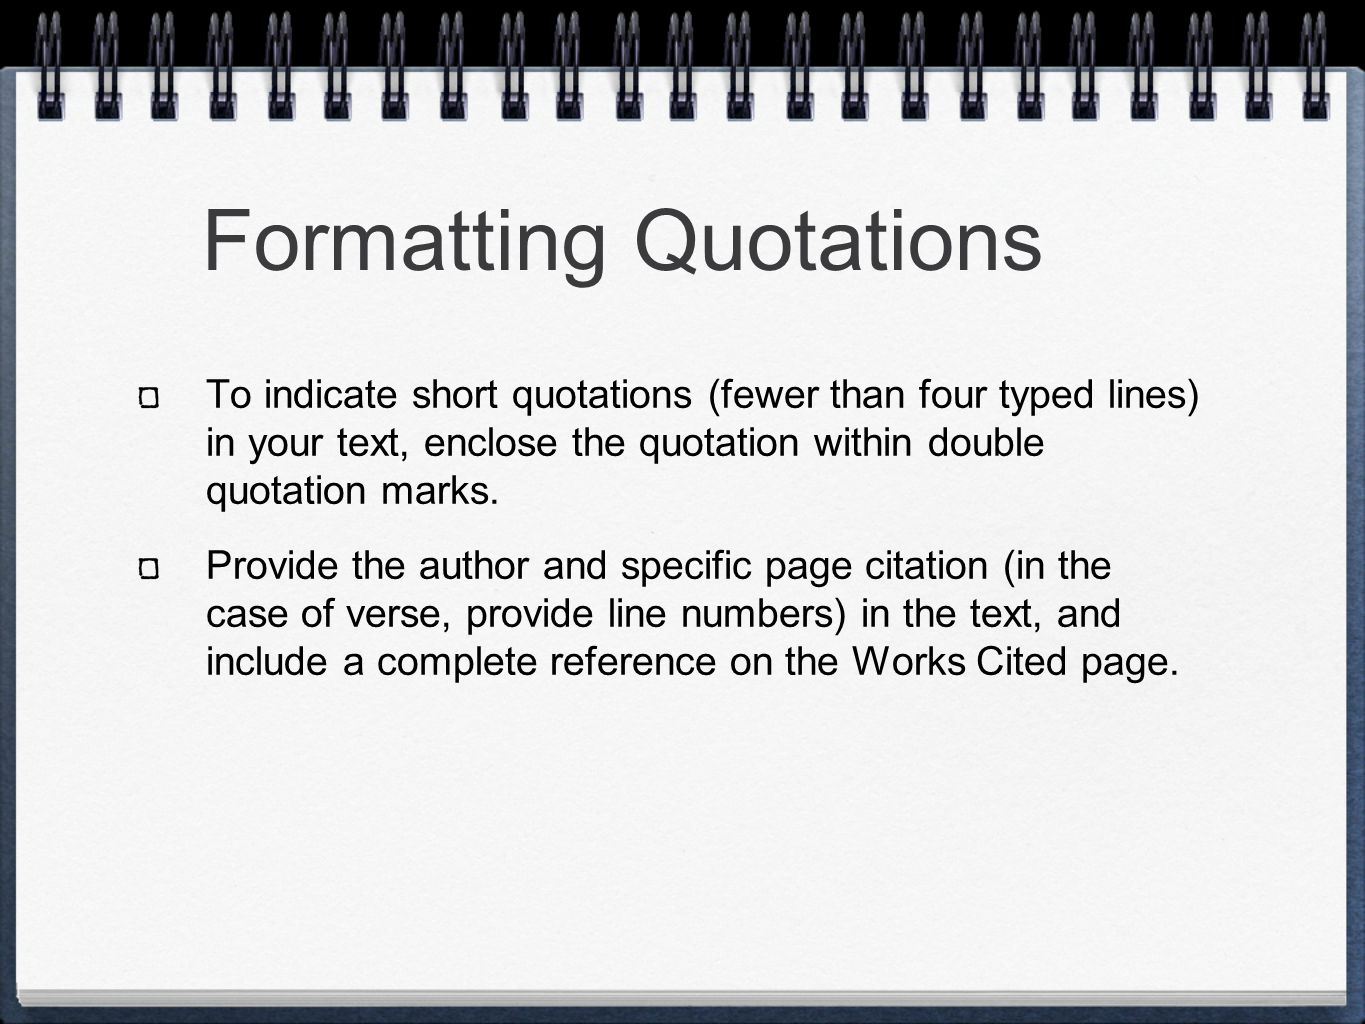 Formatting Quotations To indicate short quotations (fewer than four typed lines) in your text, enclose the quotation within double quotation marks.